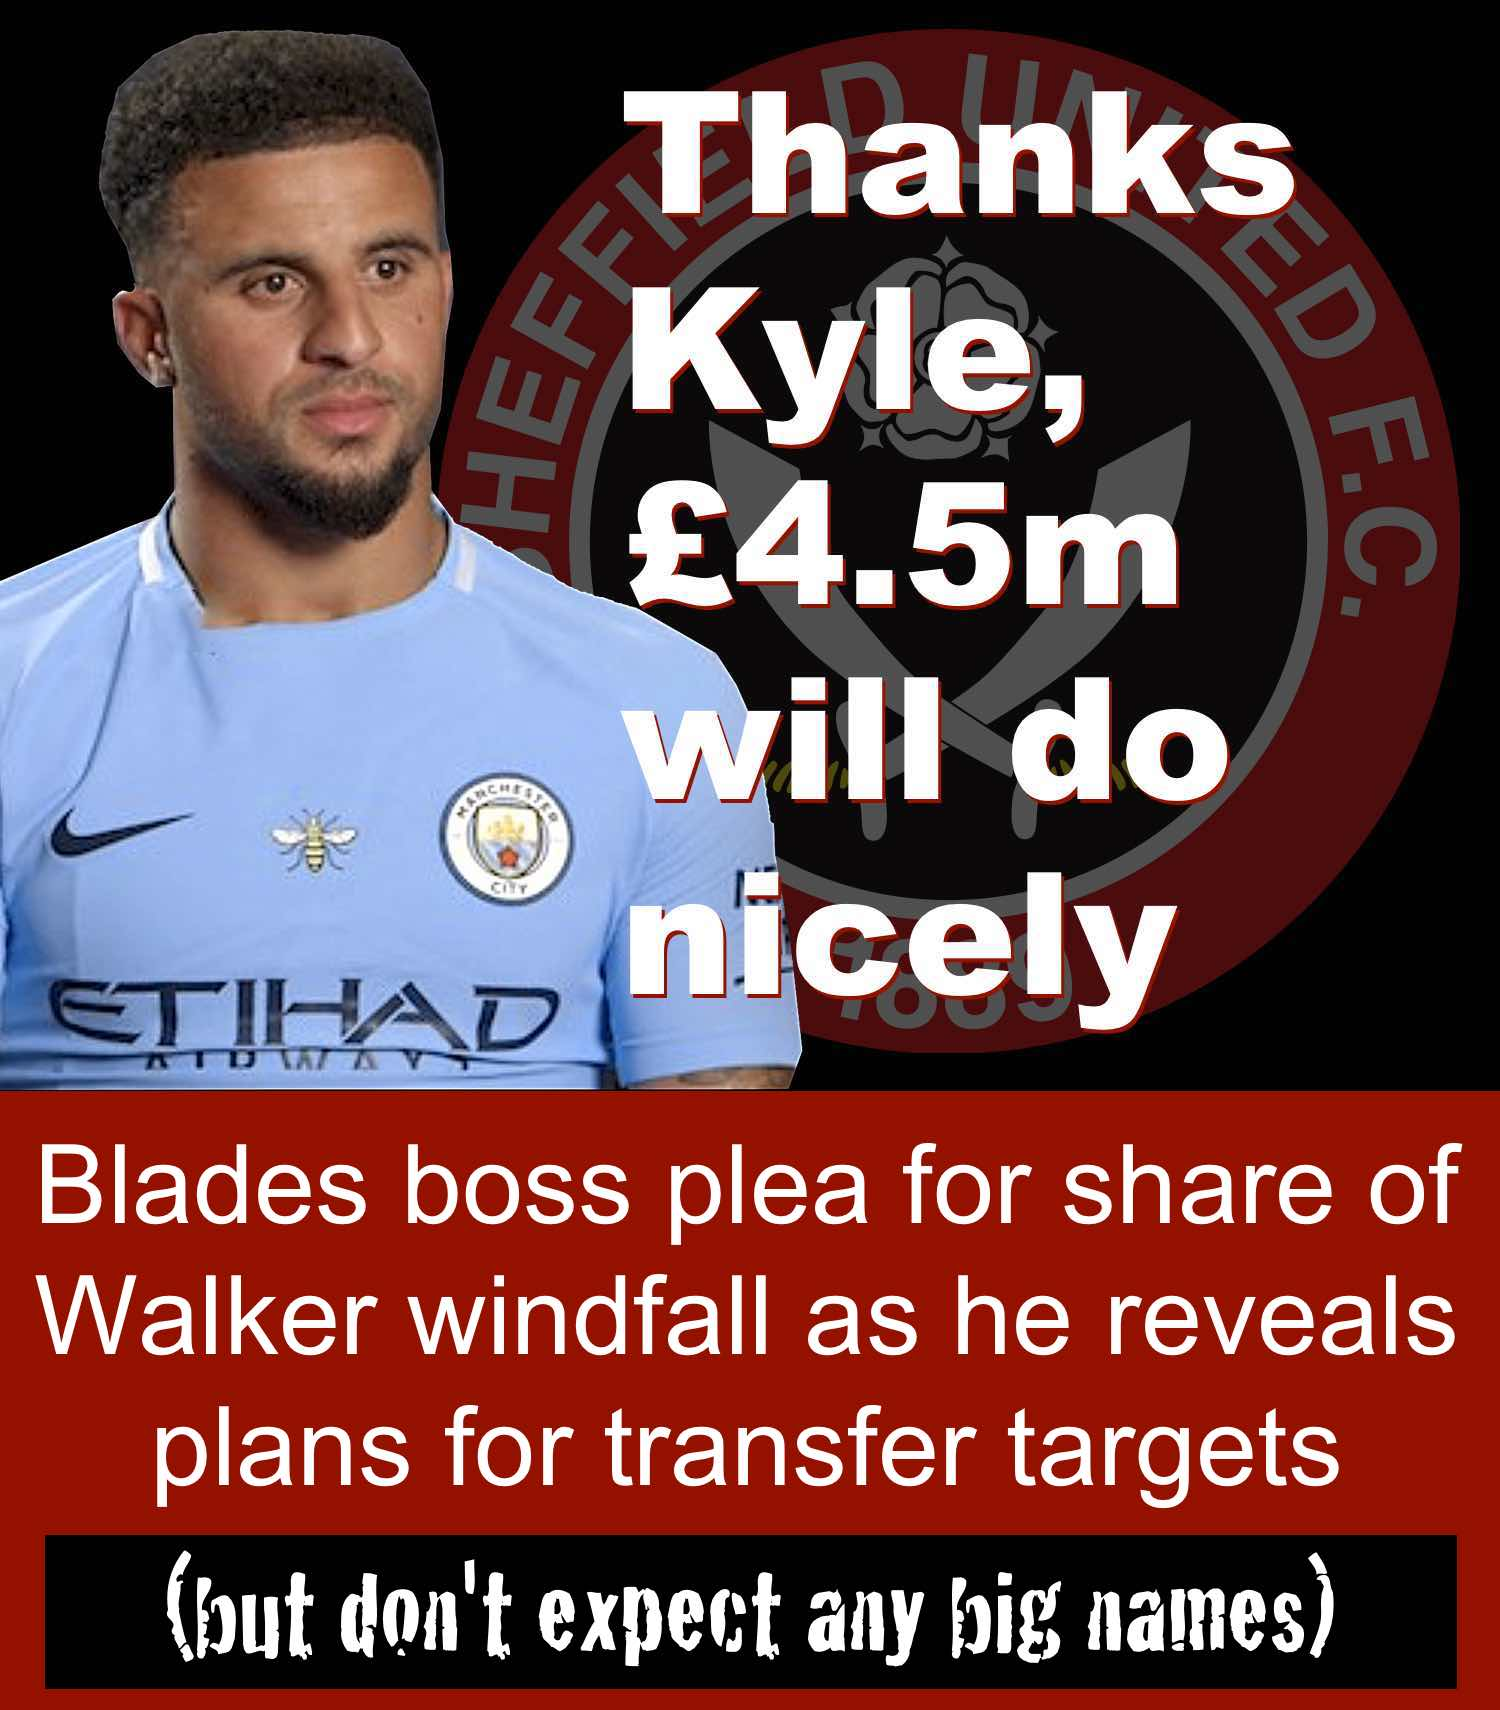 Former Blade Kyle Walker's £45m transfer to Manchester City has triggered a cash windfall for Sheffield United boss Chris Wilder at Bramall Lane